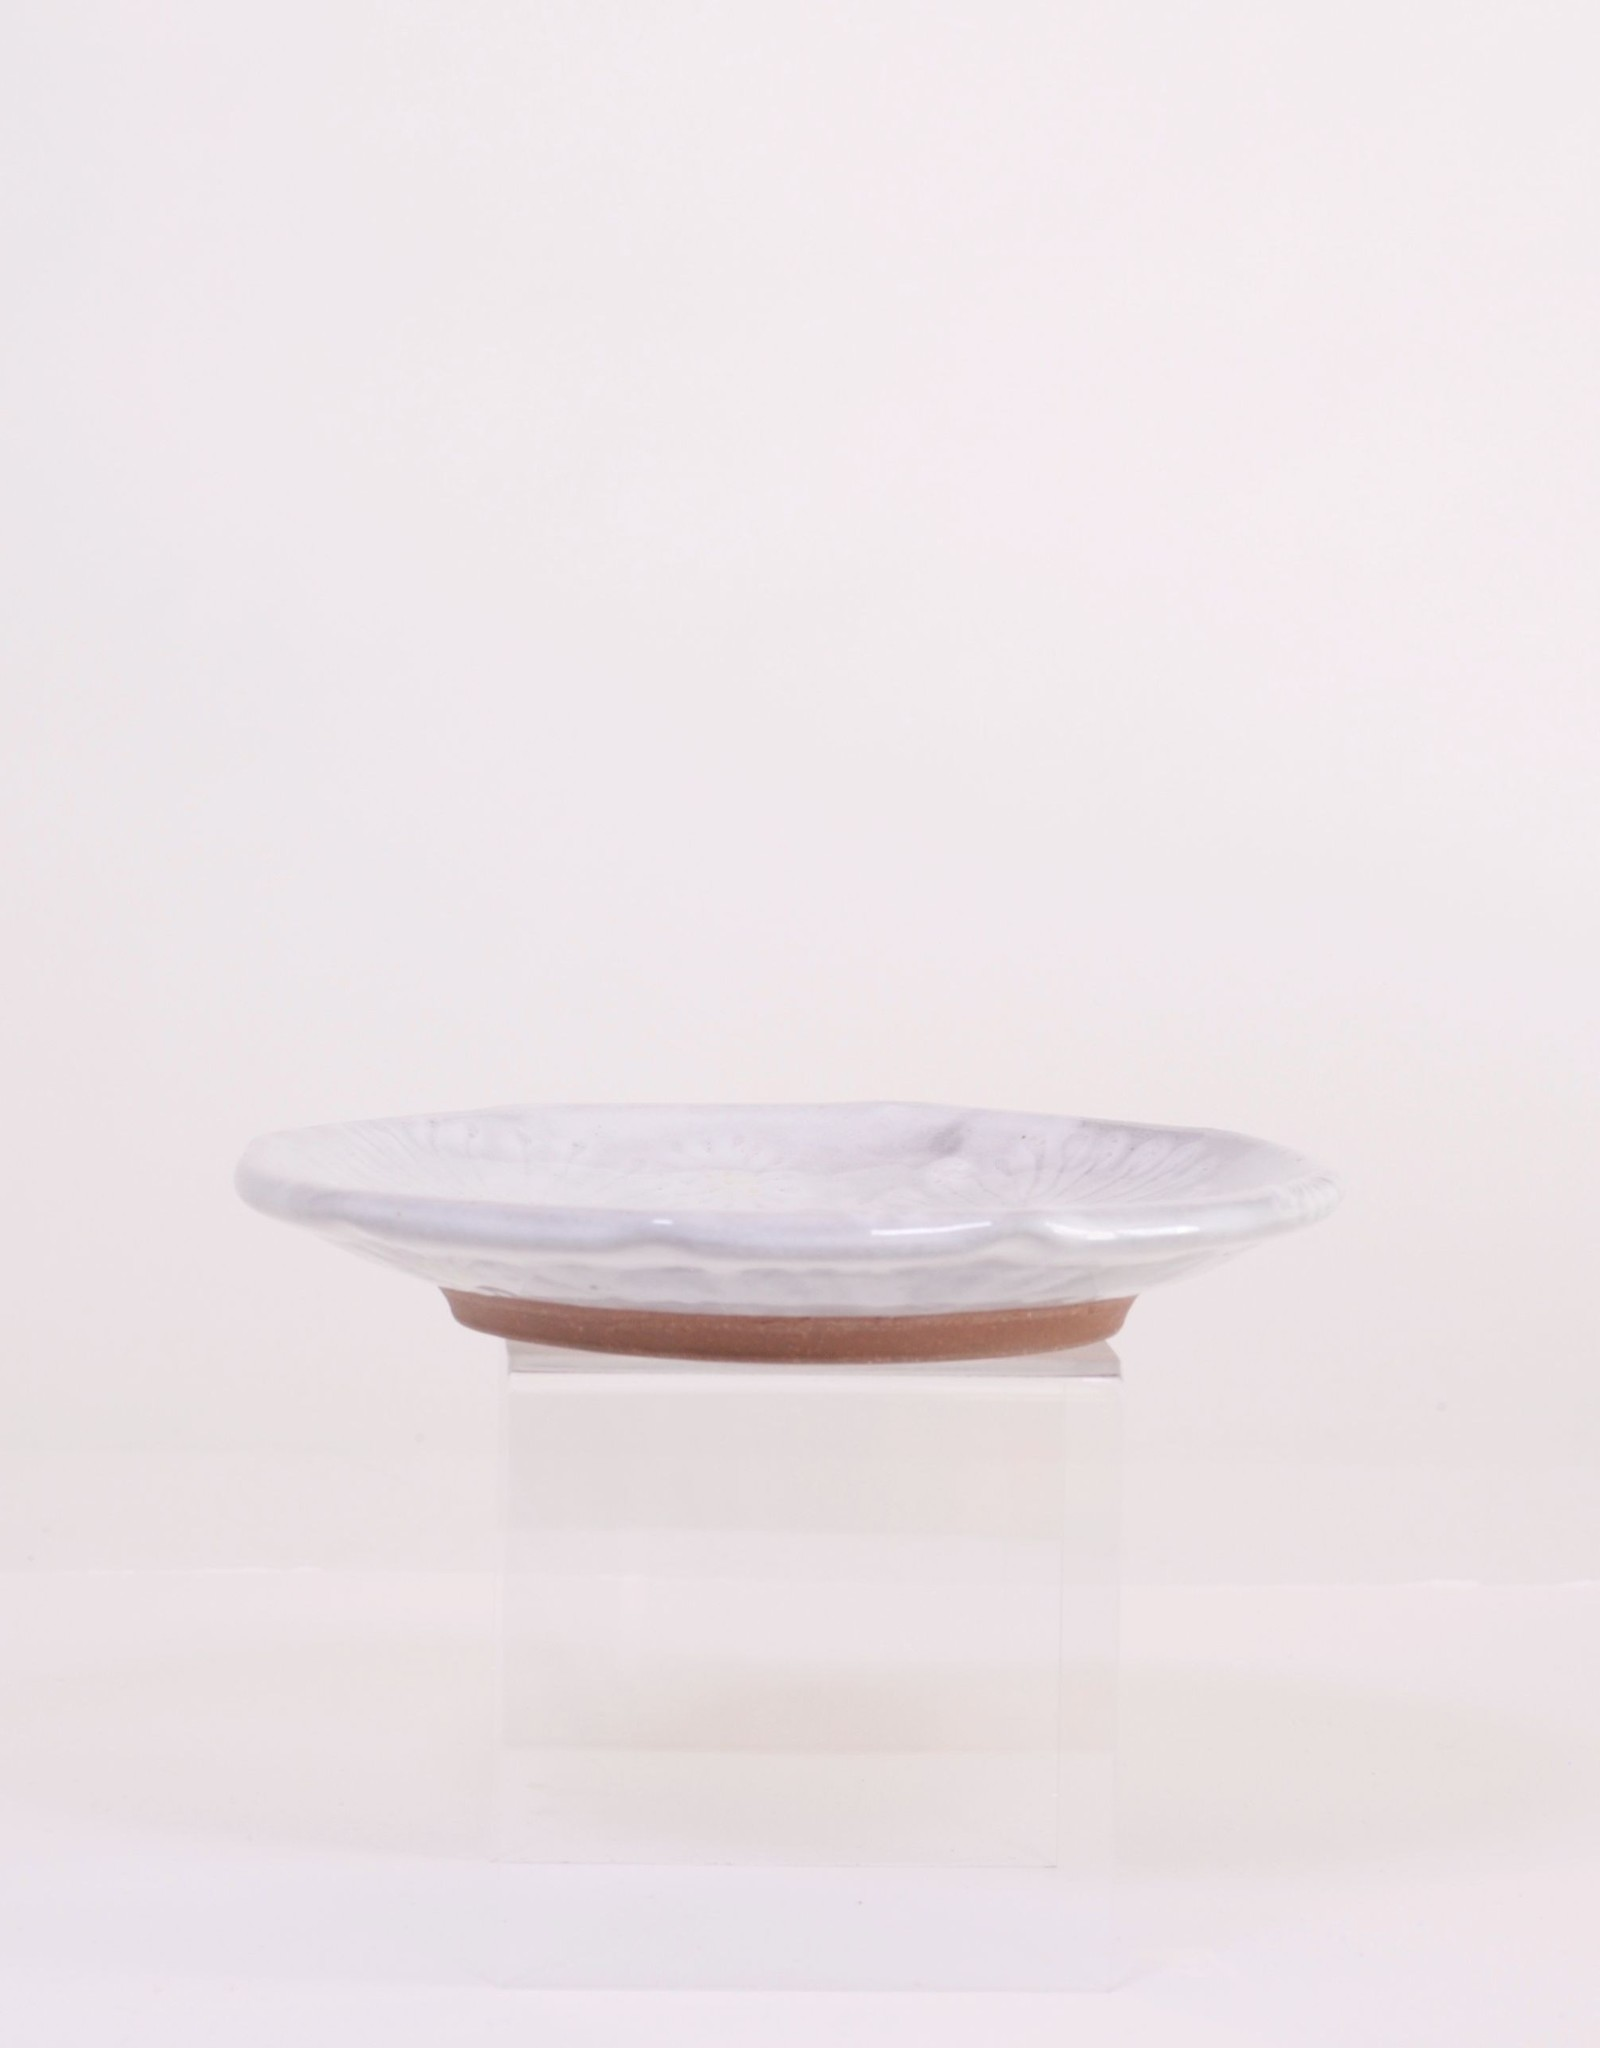 Ruth Easterbrook White Daisy Plate